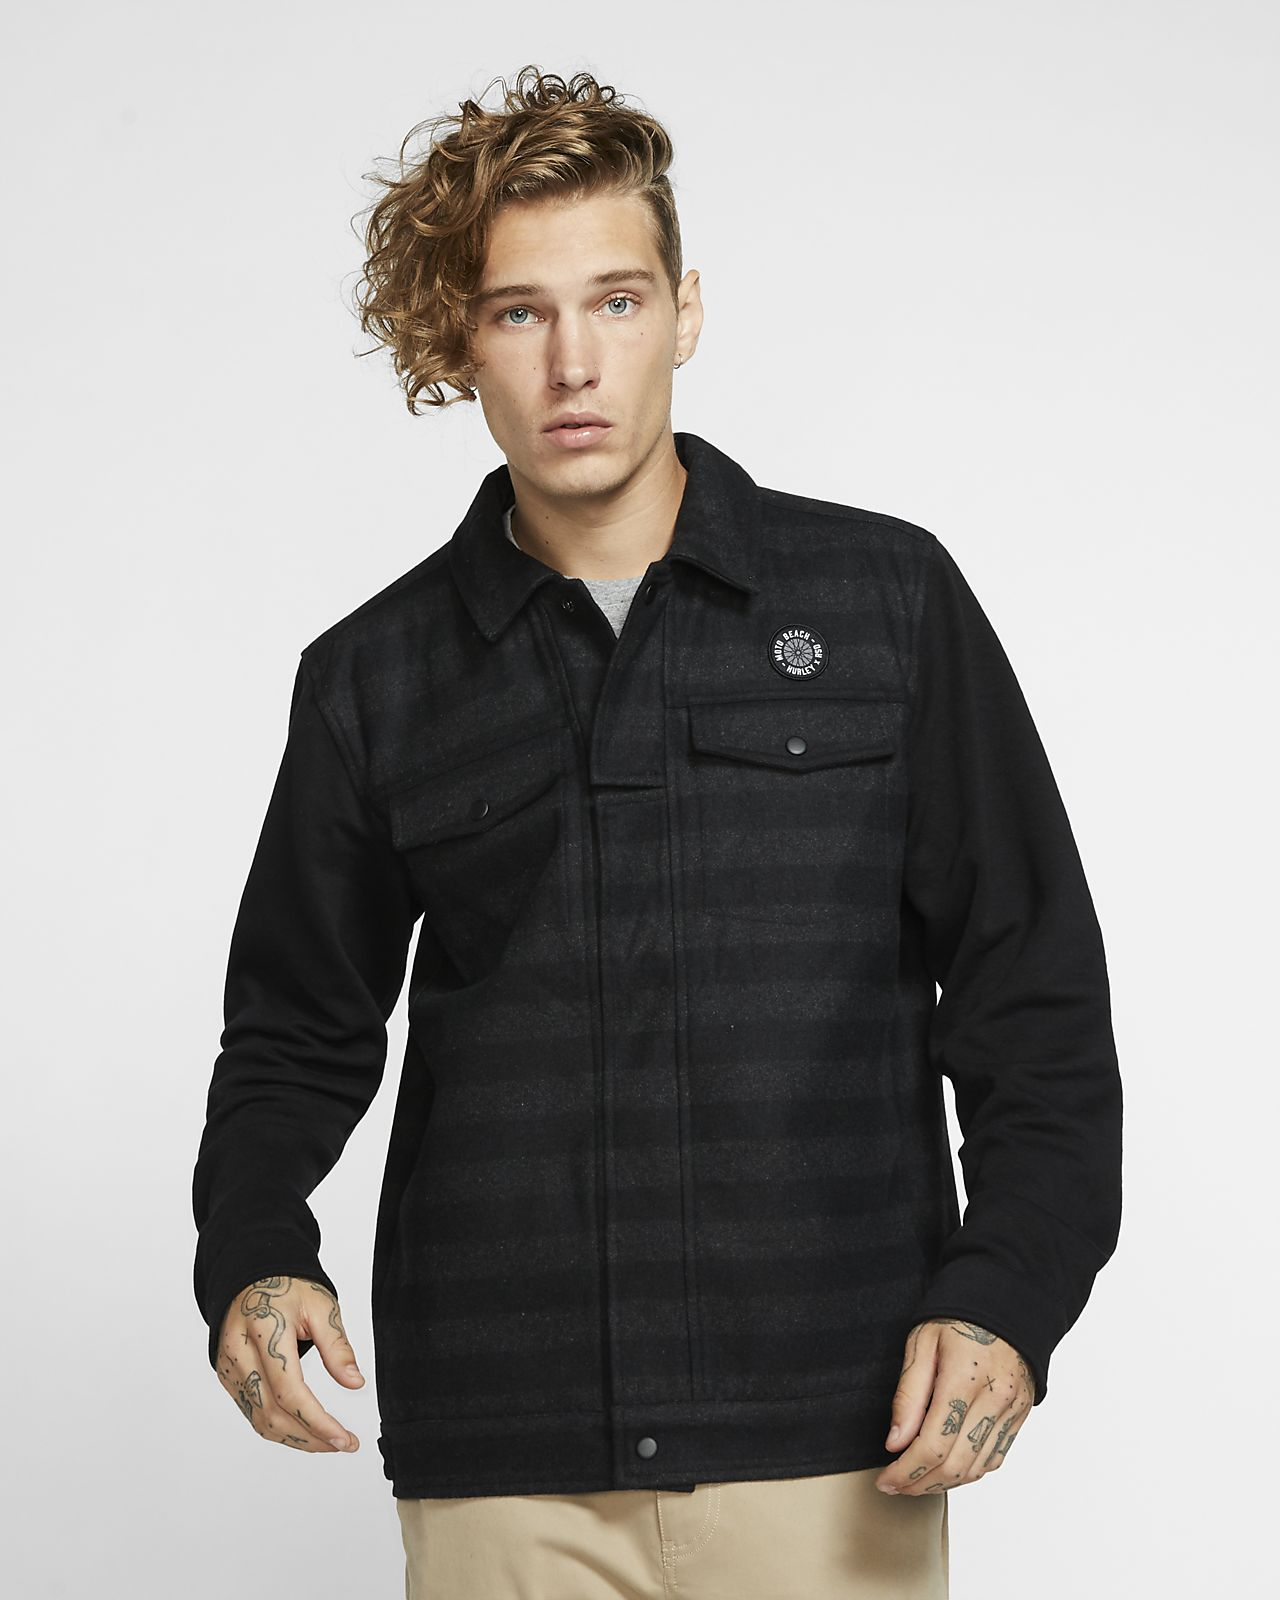 Hurley x Roland Sands Trucker Hybrid Men's Jacket